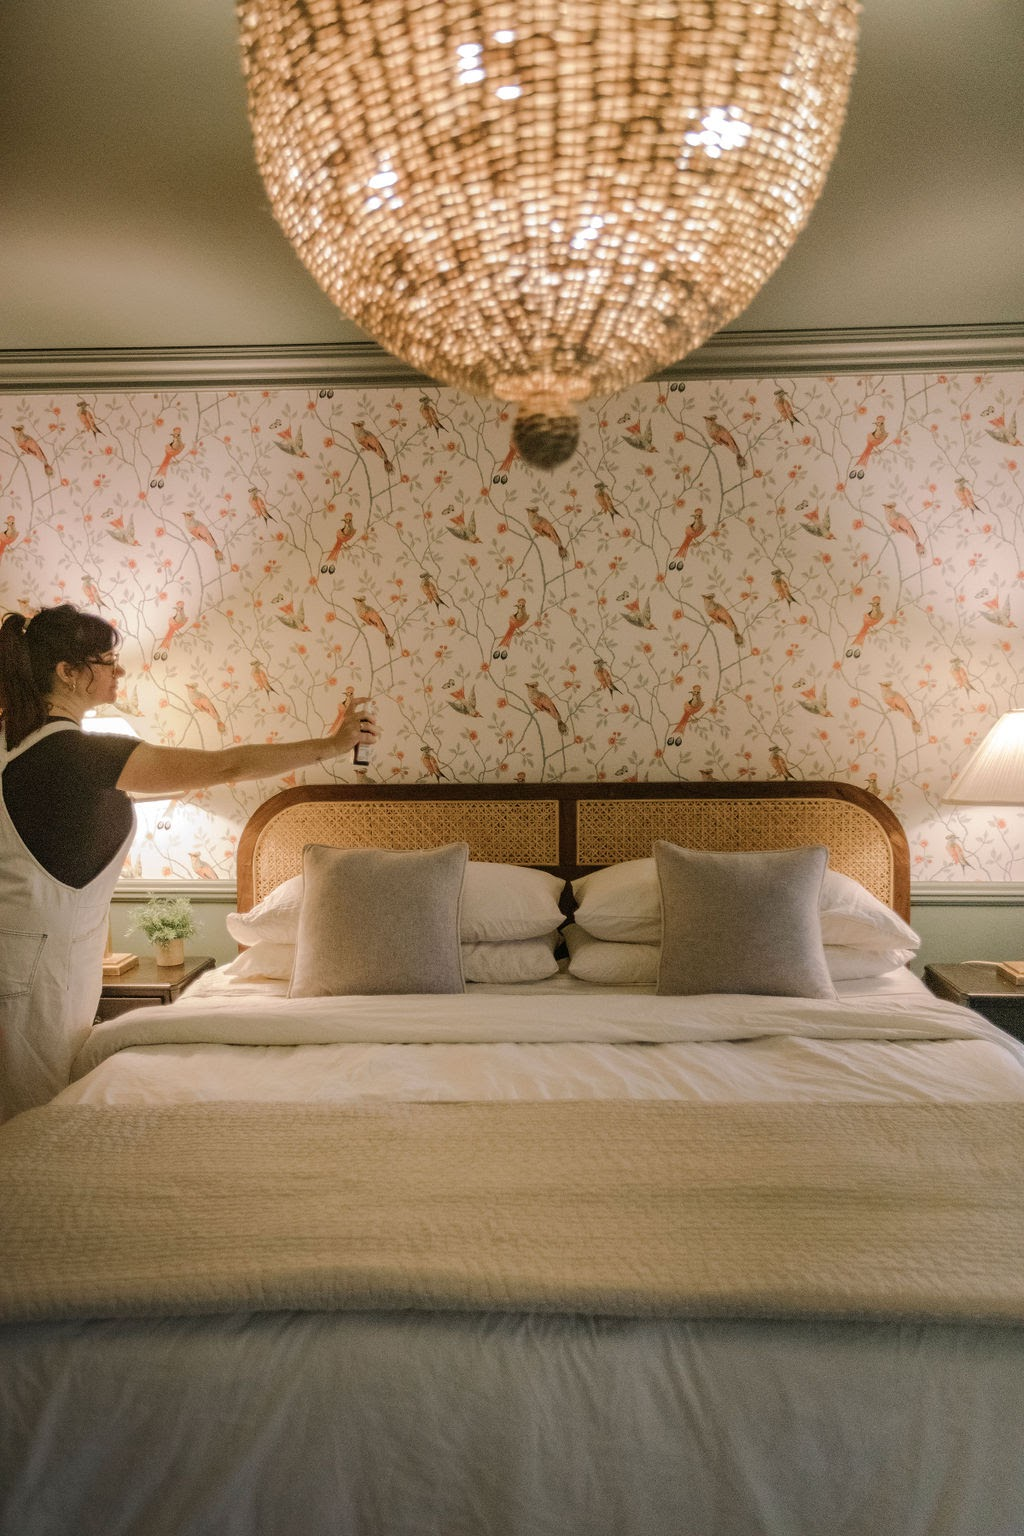 6 Simple Rules to Follow to Keep Your Bedding Fresh | Wit & Delight